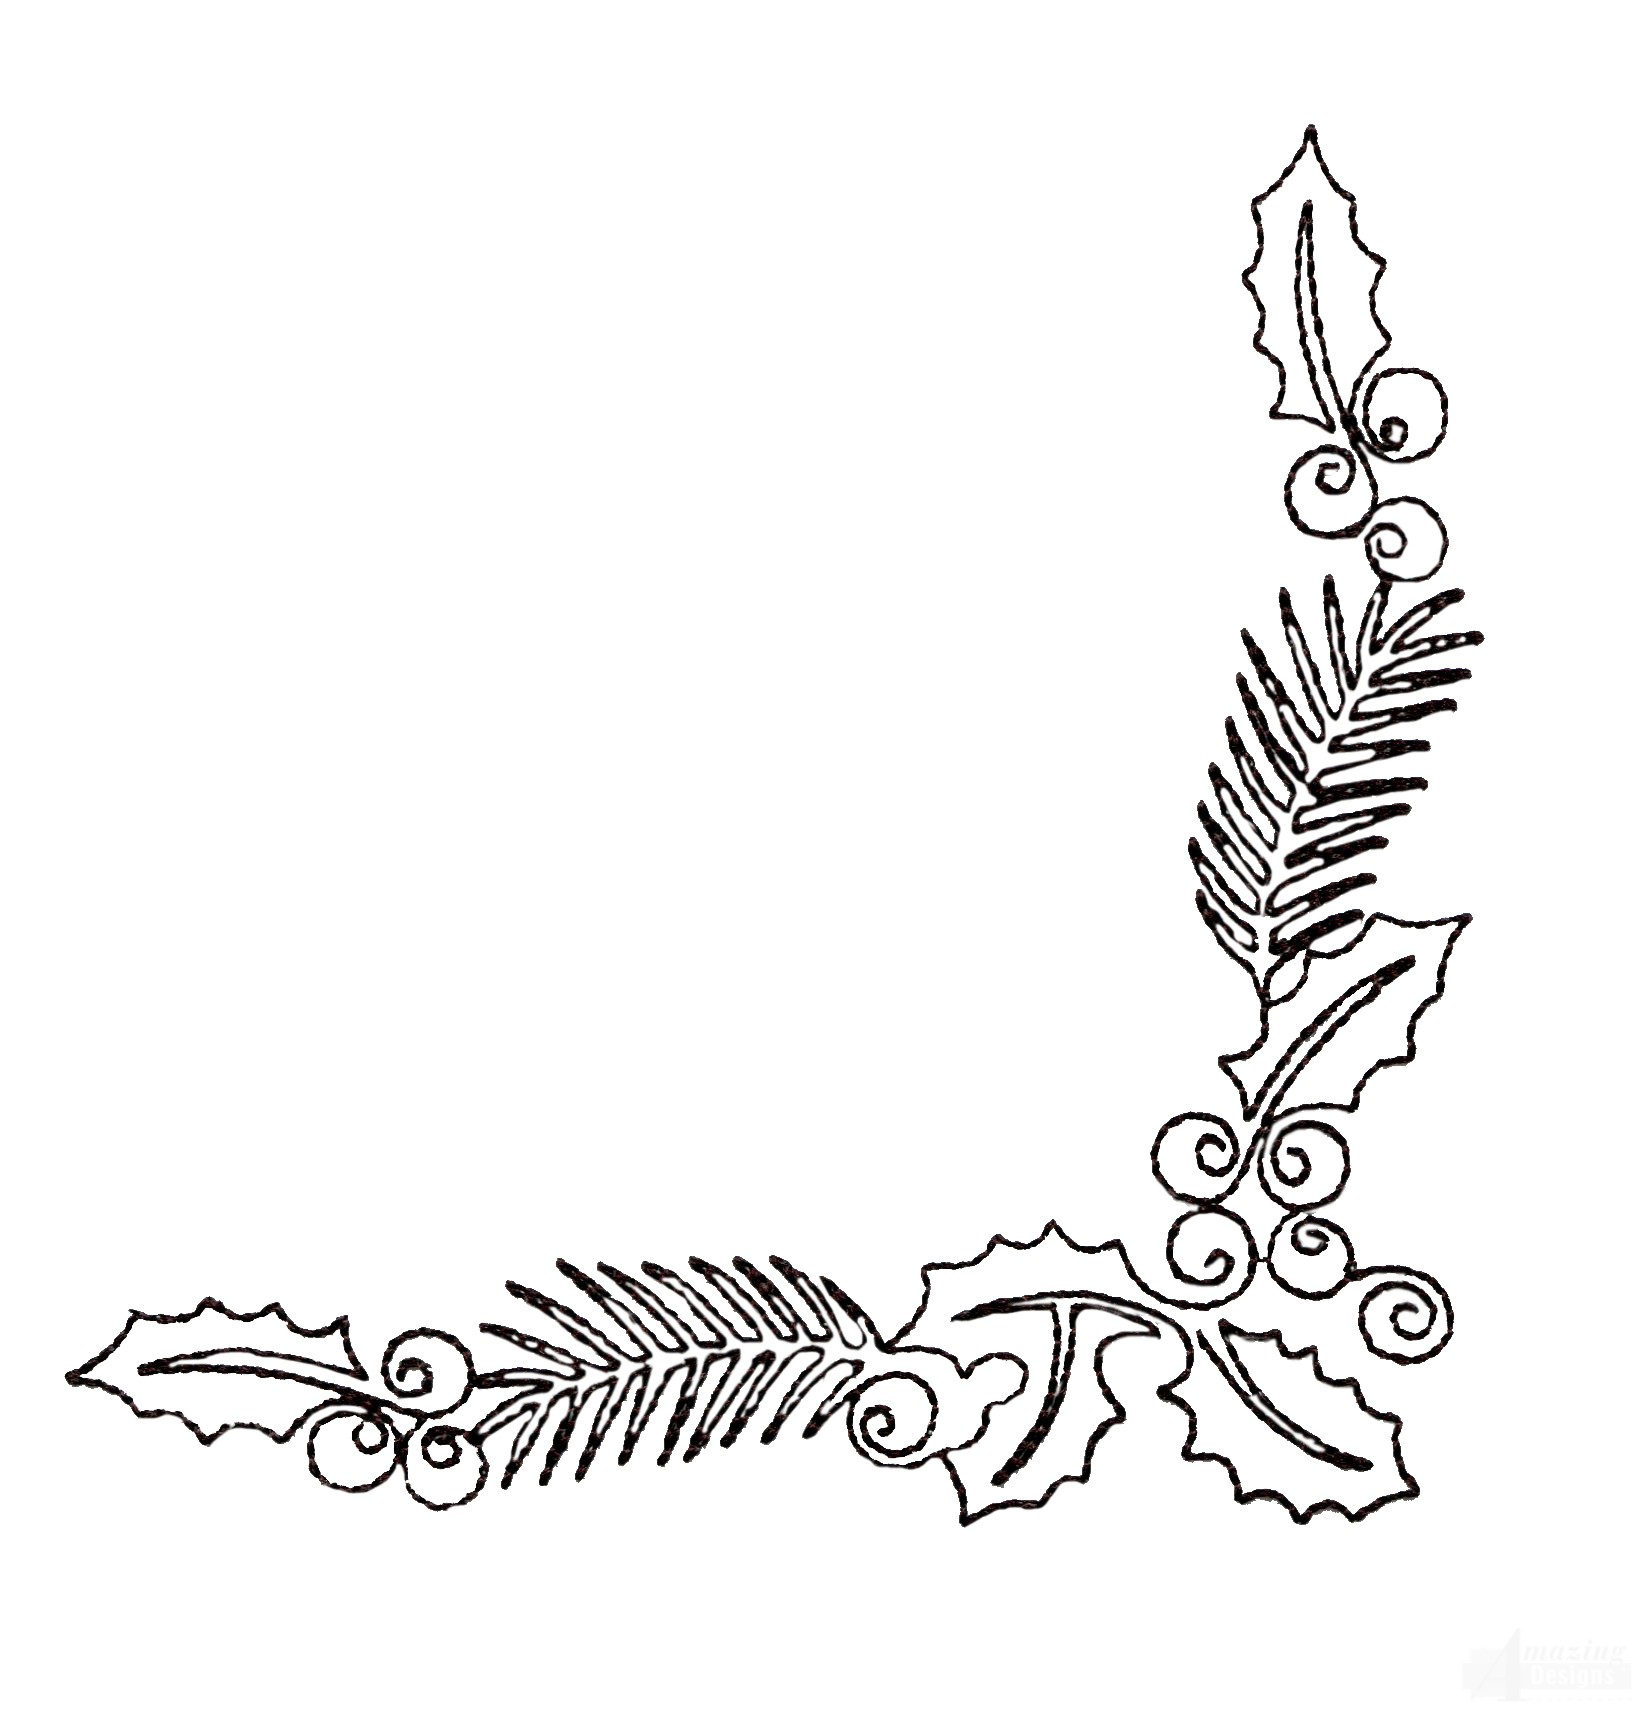 Swncqo quilting outline embroidery design